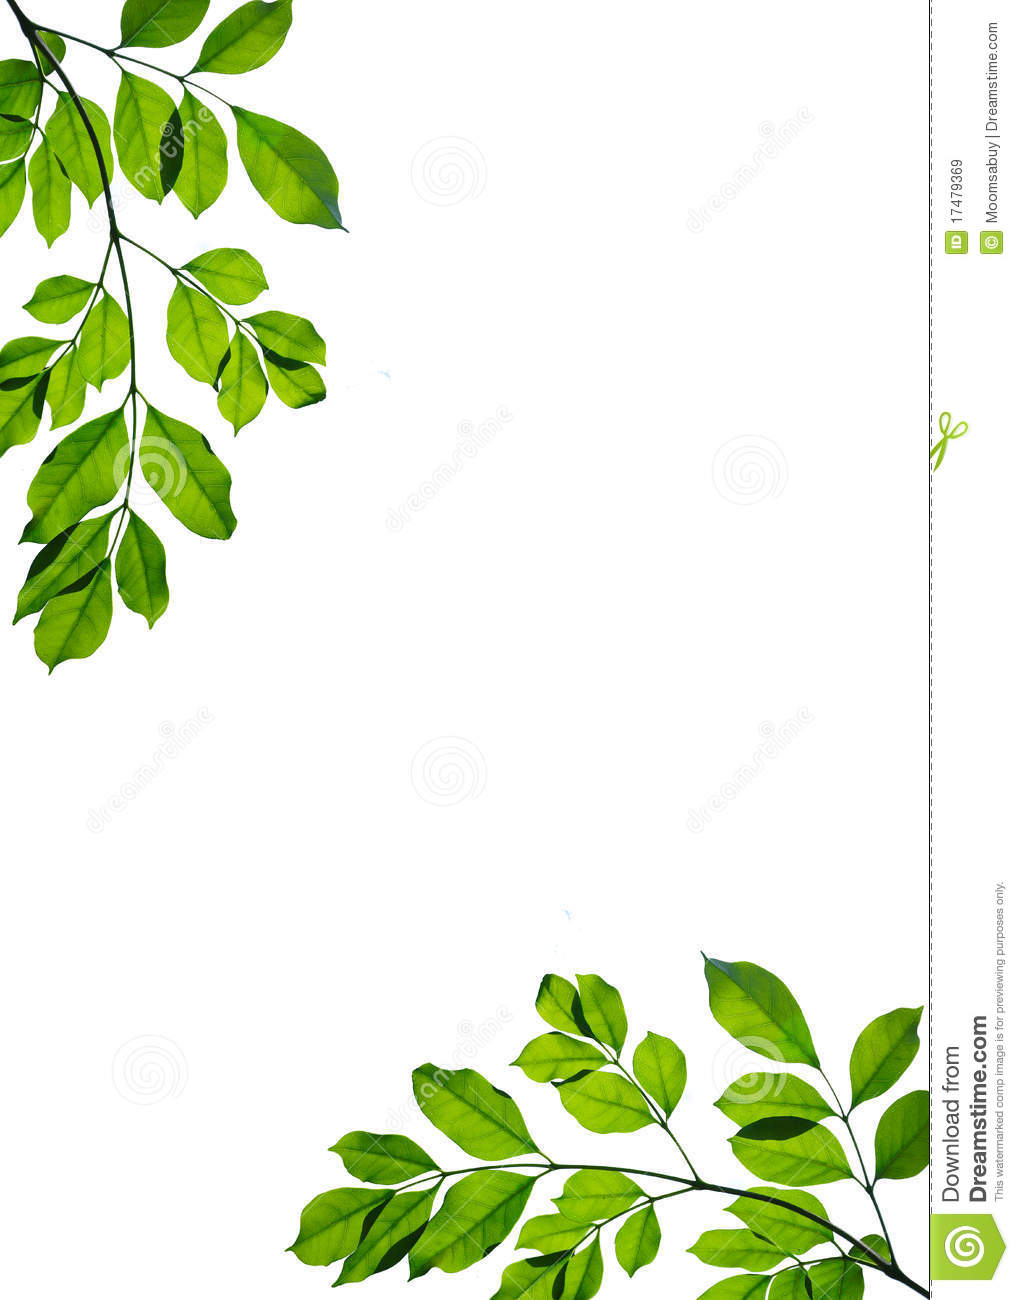 green leaf frame isolated royalty free stock images image 17479369